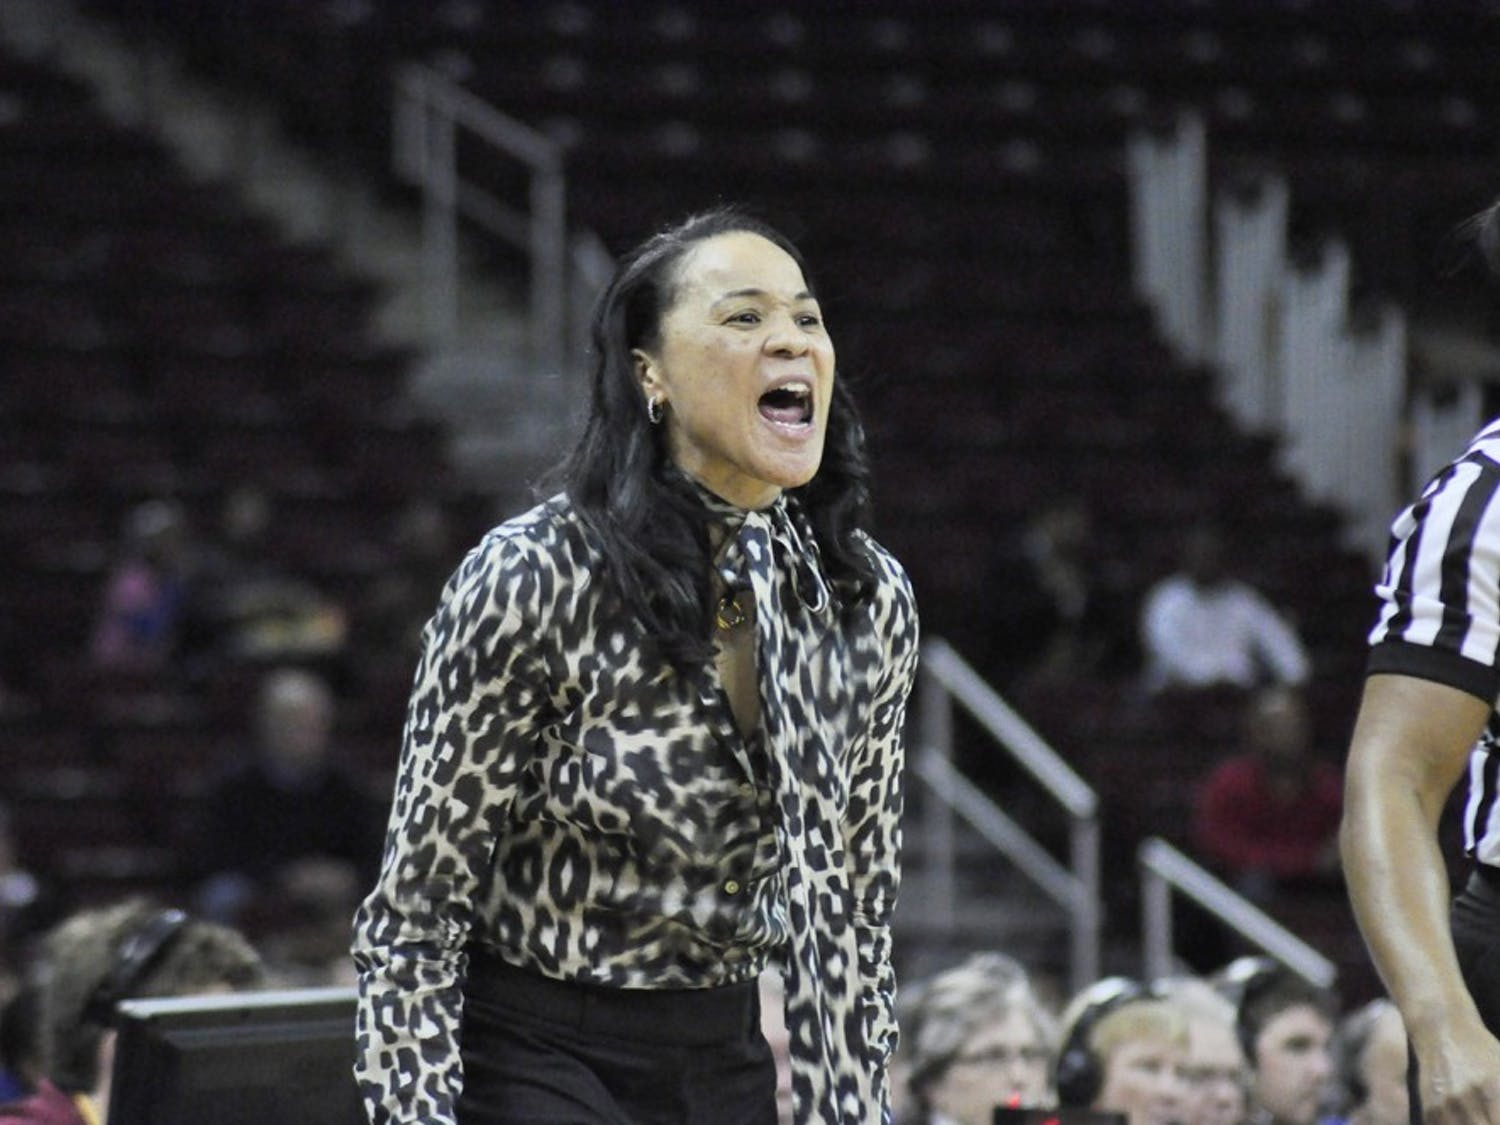 USC women's basketball coach Dawn Staley announced Sunday night she withdrew her name from consideration for the Ohio State head-coaching vacancy.